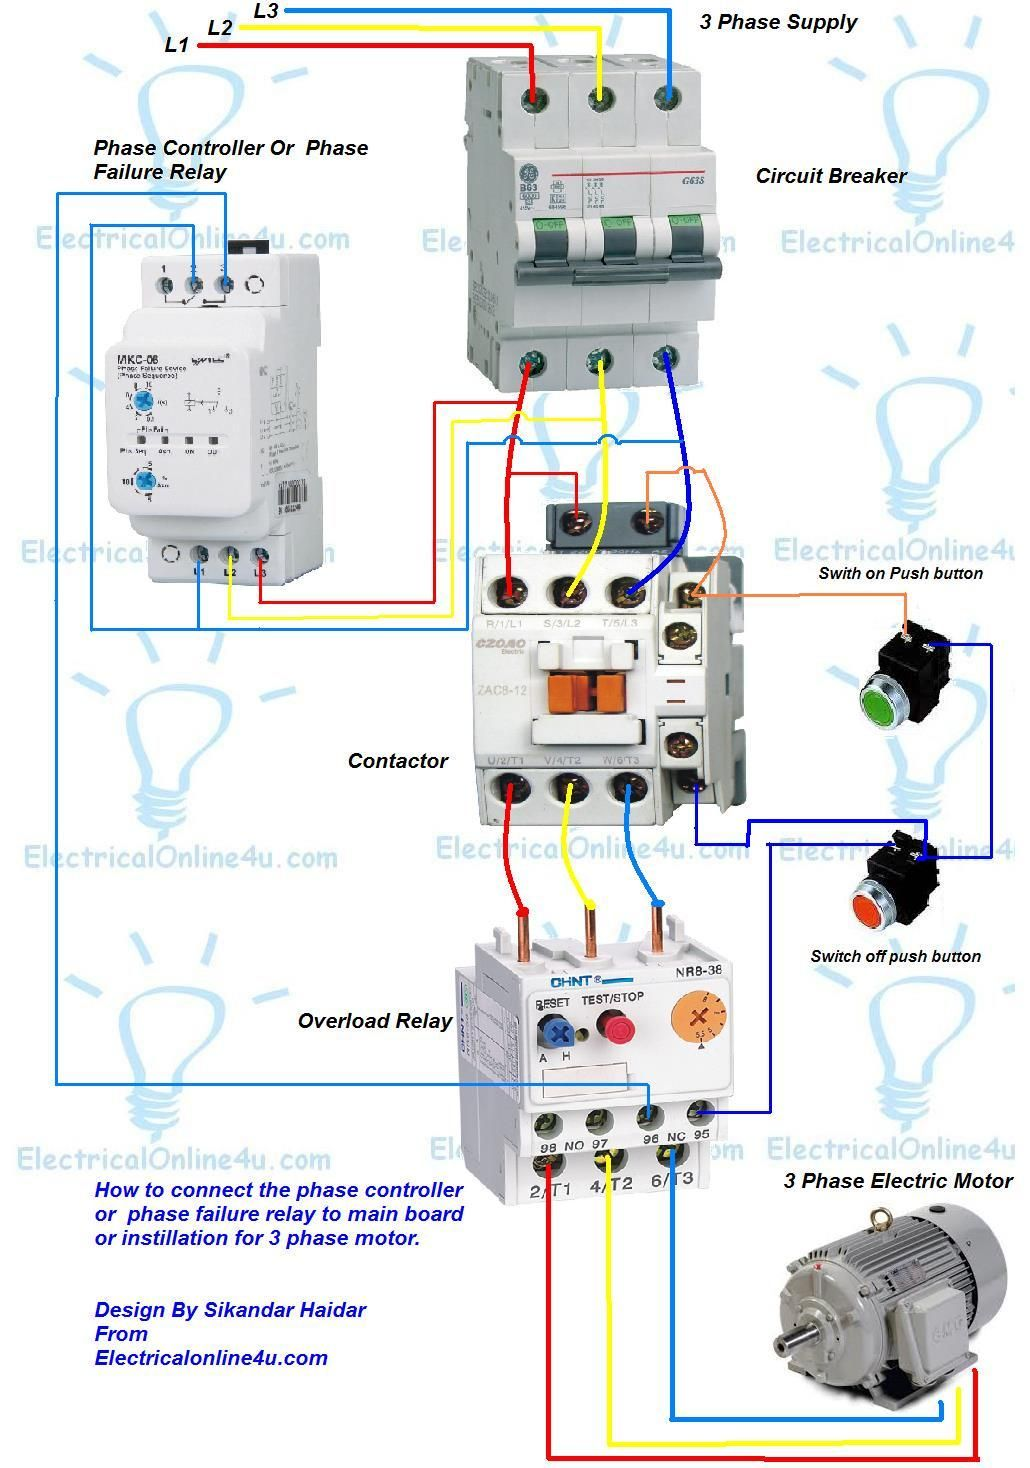 Electrical Control Panel Wiring Diagram 2005 Ford Explorer Factory Stereo 4 Odnscm Danielaharde De Phase Controller Failure Relay Di On Line Rh Pinterest Com Control4 System